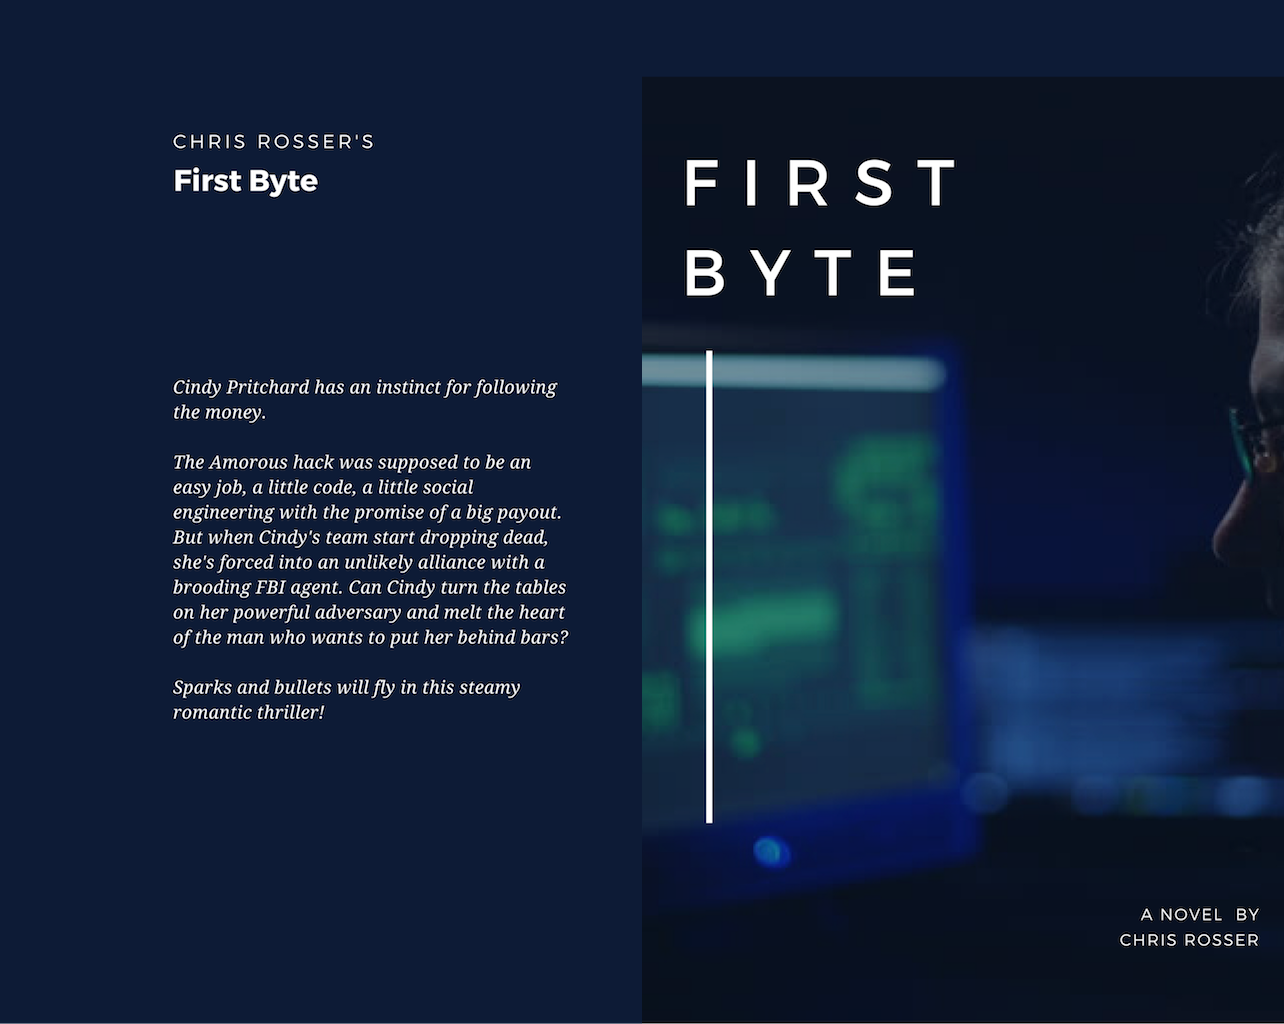 First Byte cover mockup and blurb